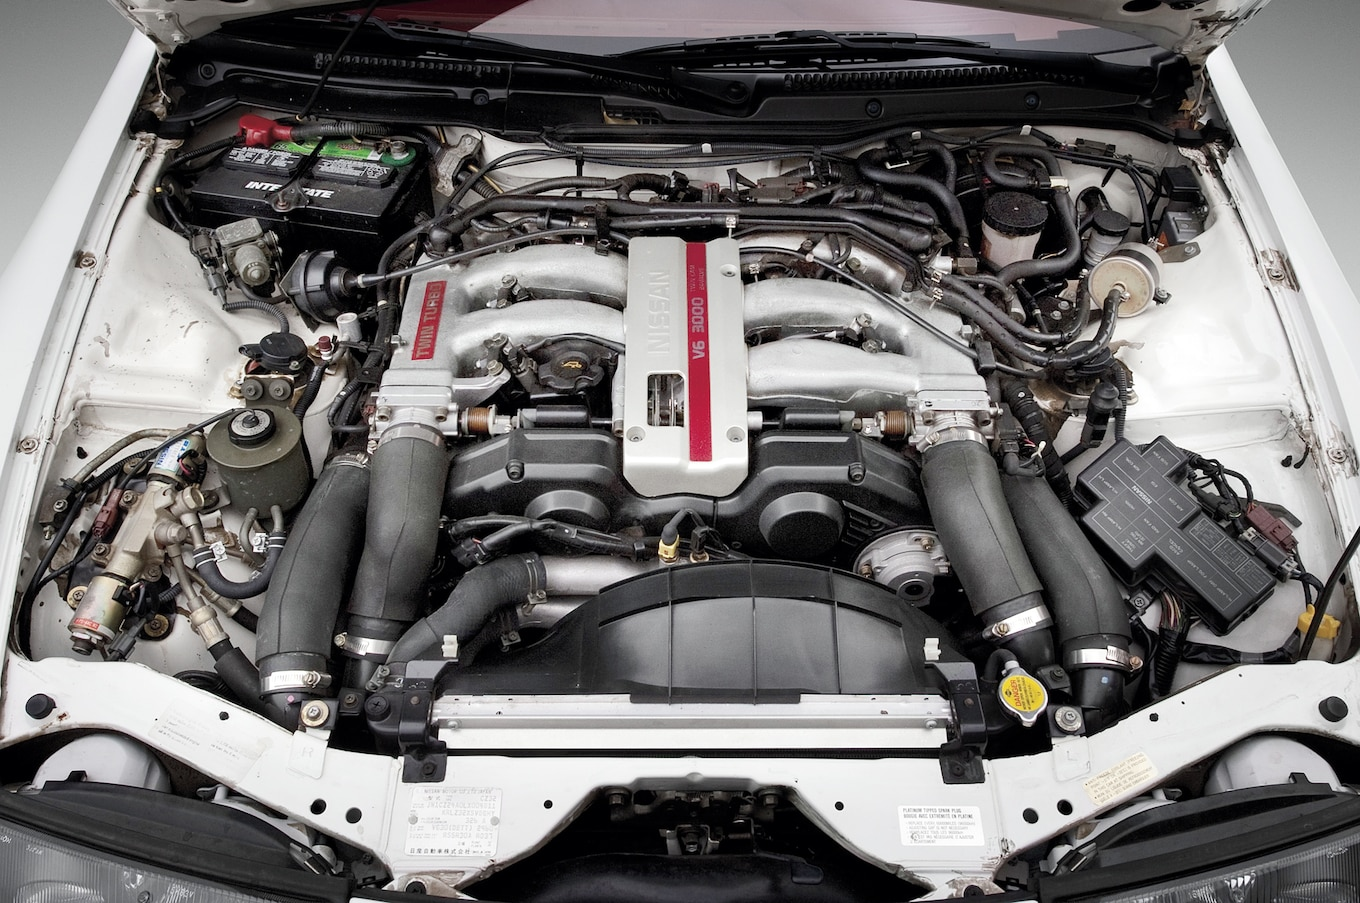 hight resolution of  1990 1996 nissan 300zx engine 1990 1996 nissan 300zx buyer s guide motor trend classic 300zx engine